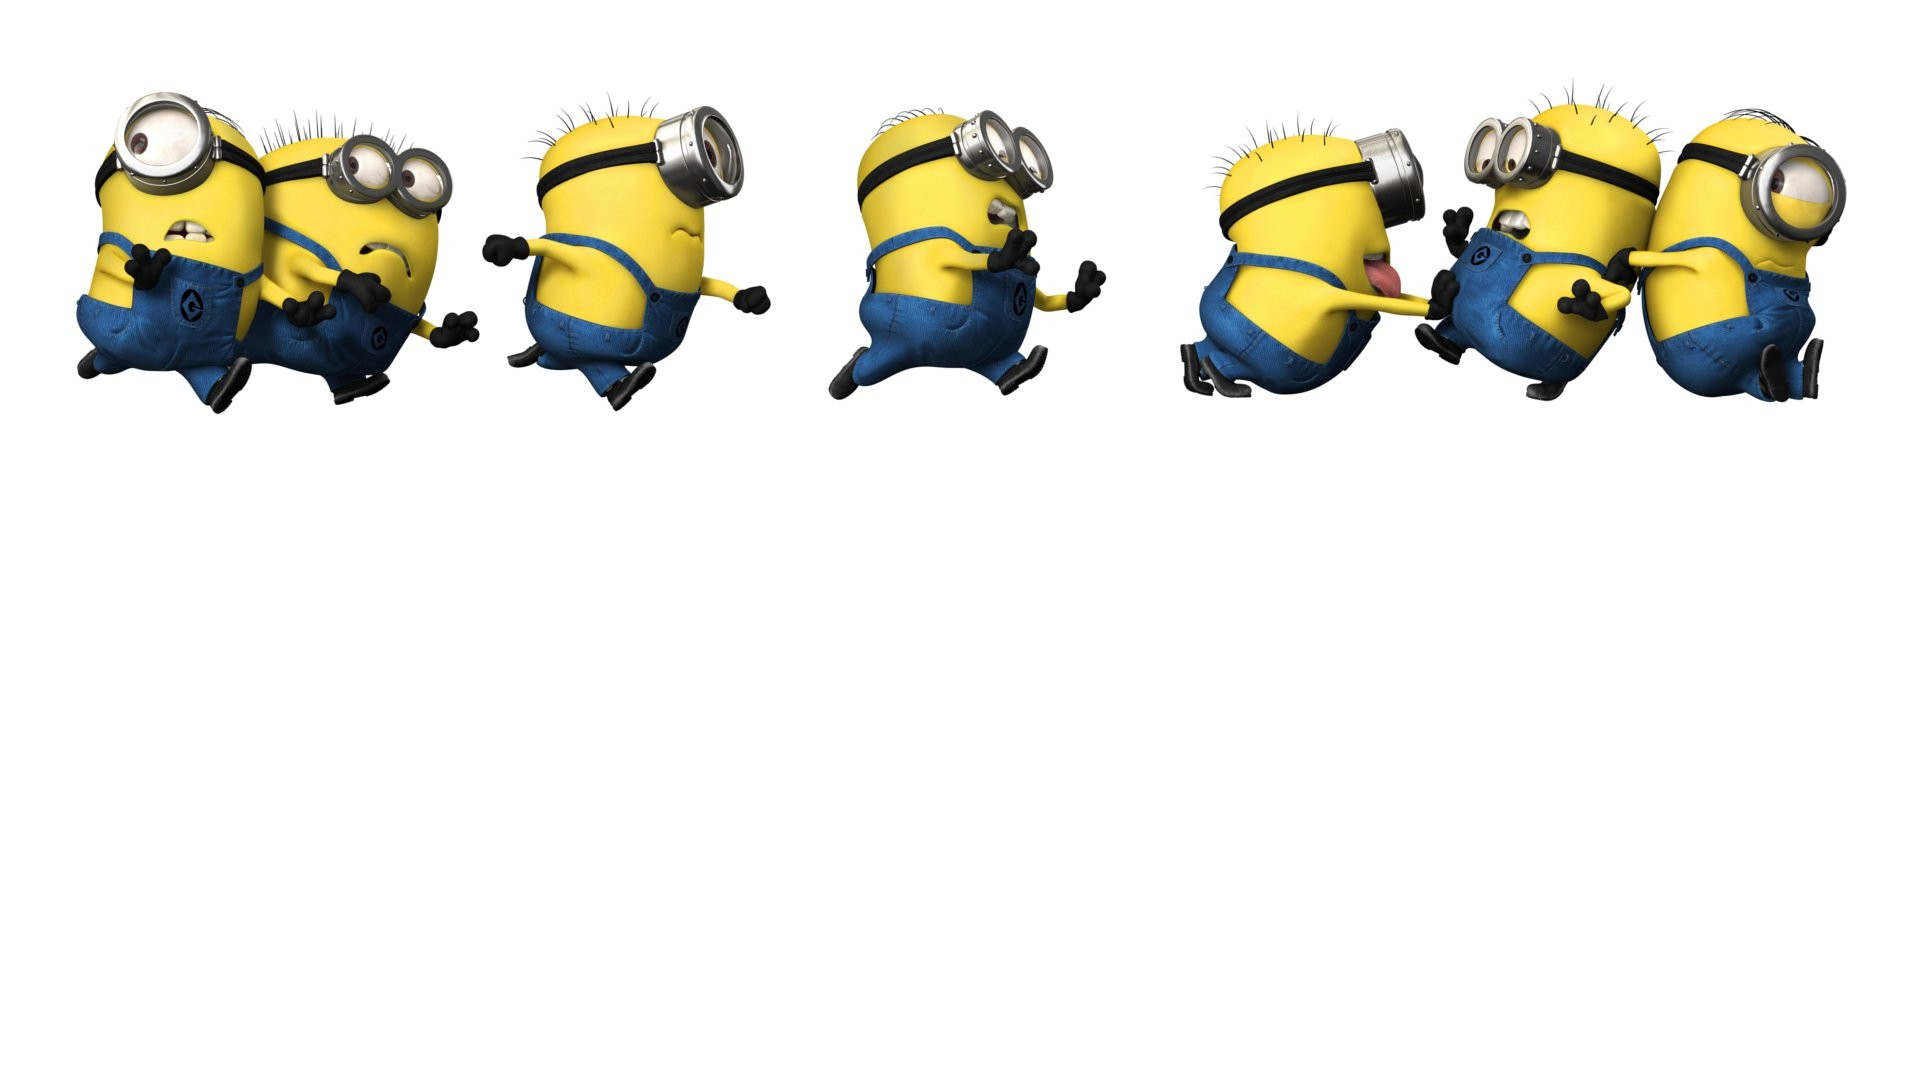 Image Result For Despicable Me Full Movie Hd Free Fresh Minions Despicable Me Wallpapers Desktop Backgrounds